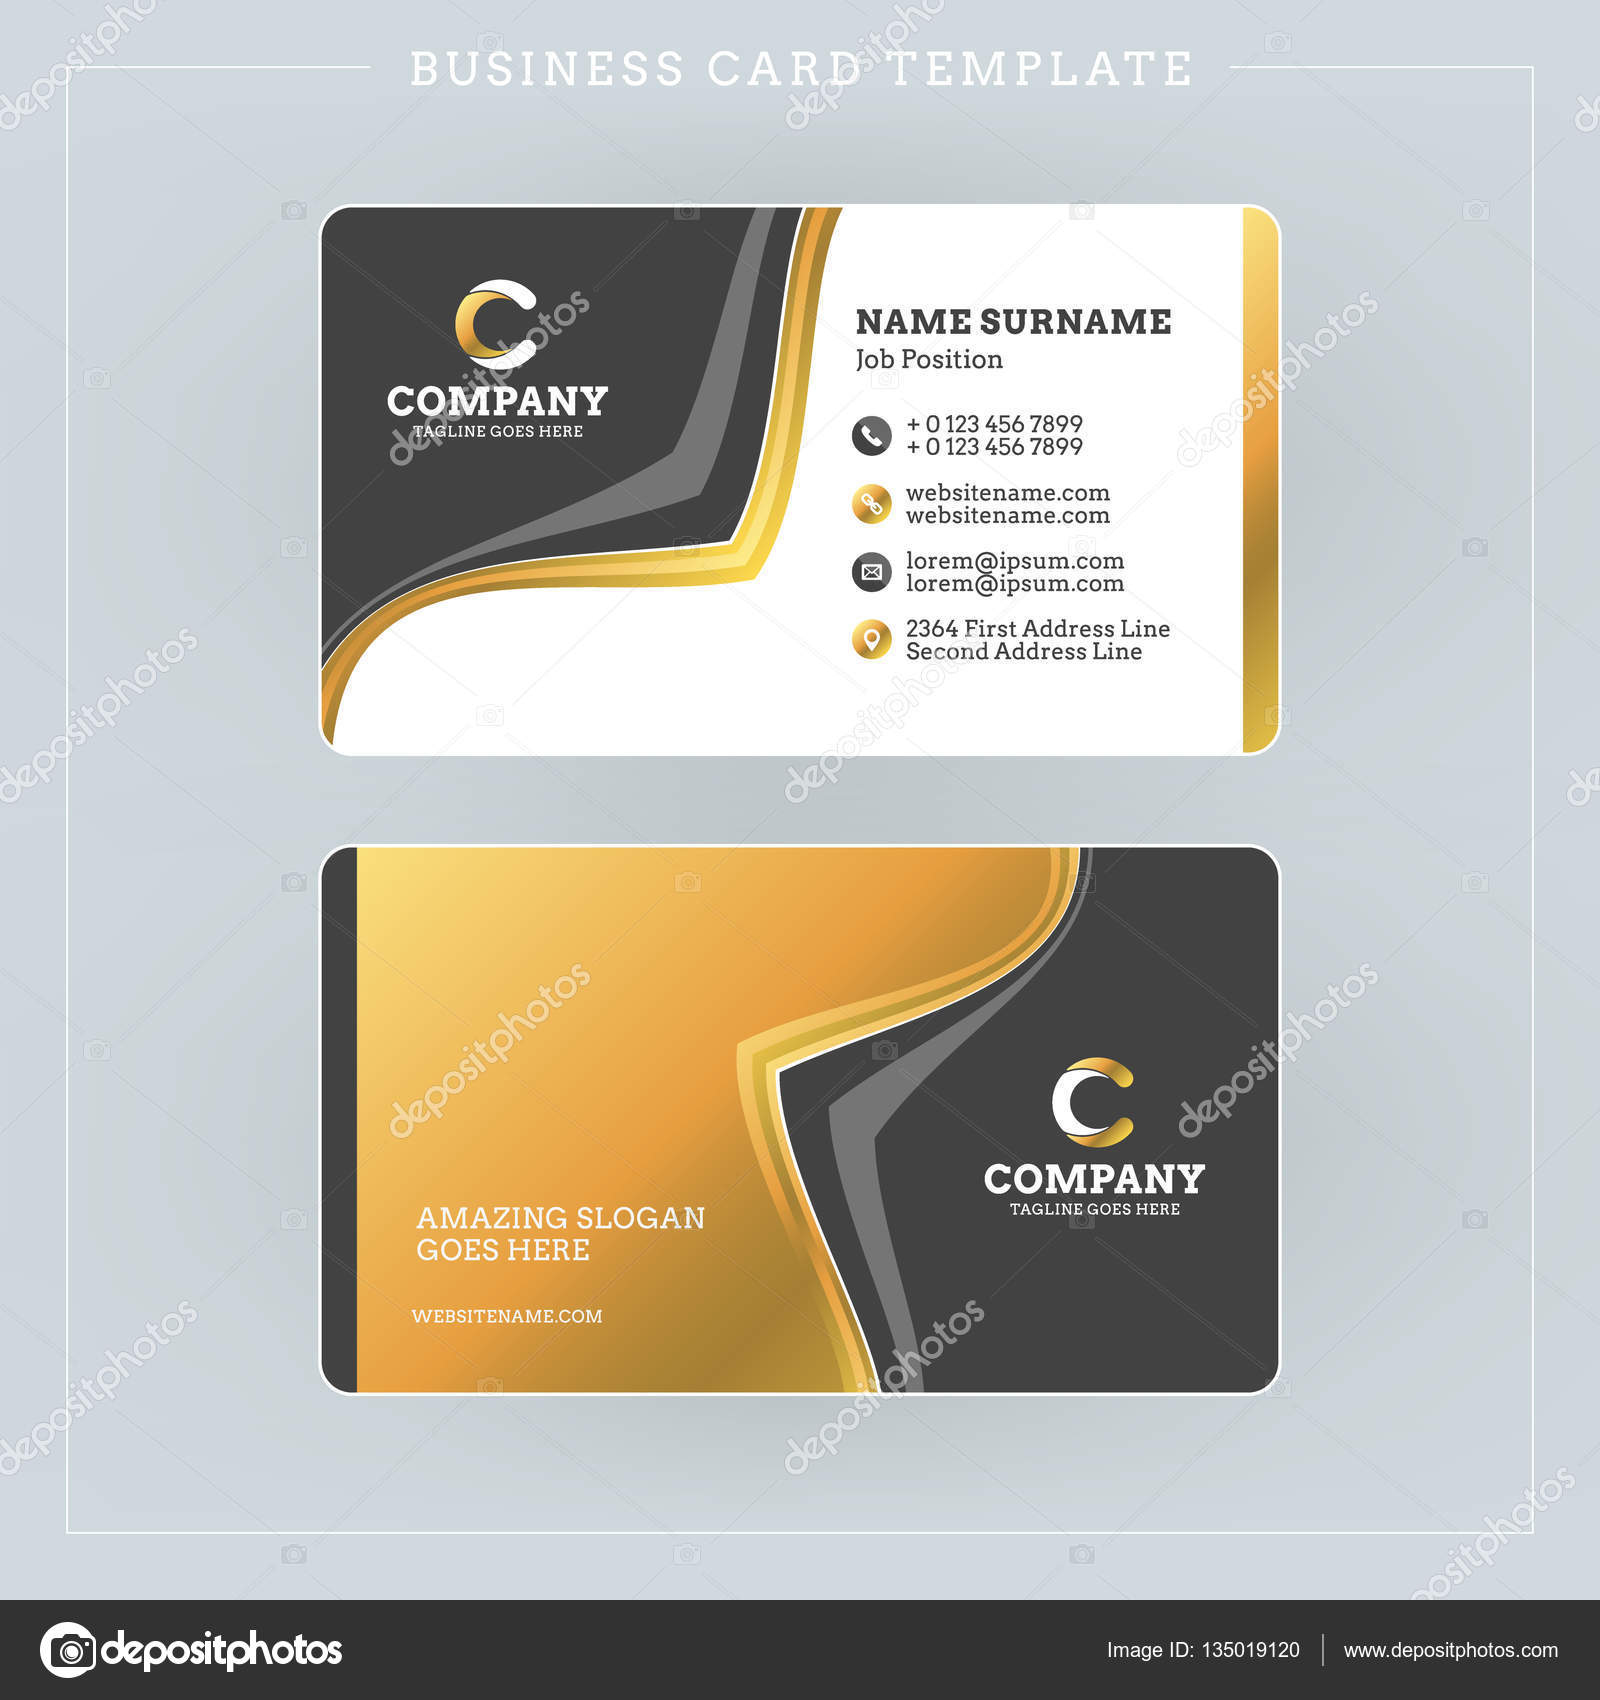 Doublesided Business Card Template With Abstract Golden And Black - Two sided business card template